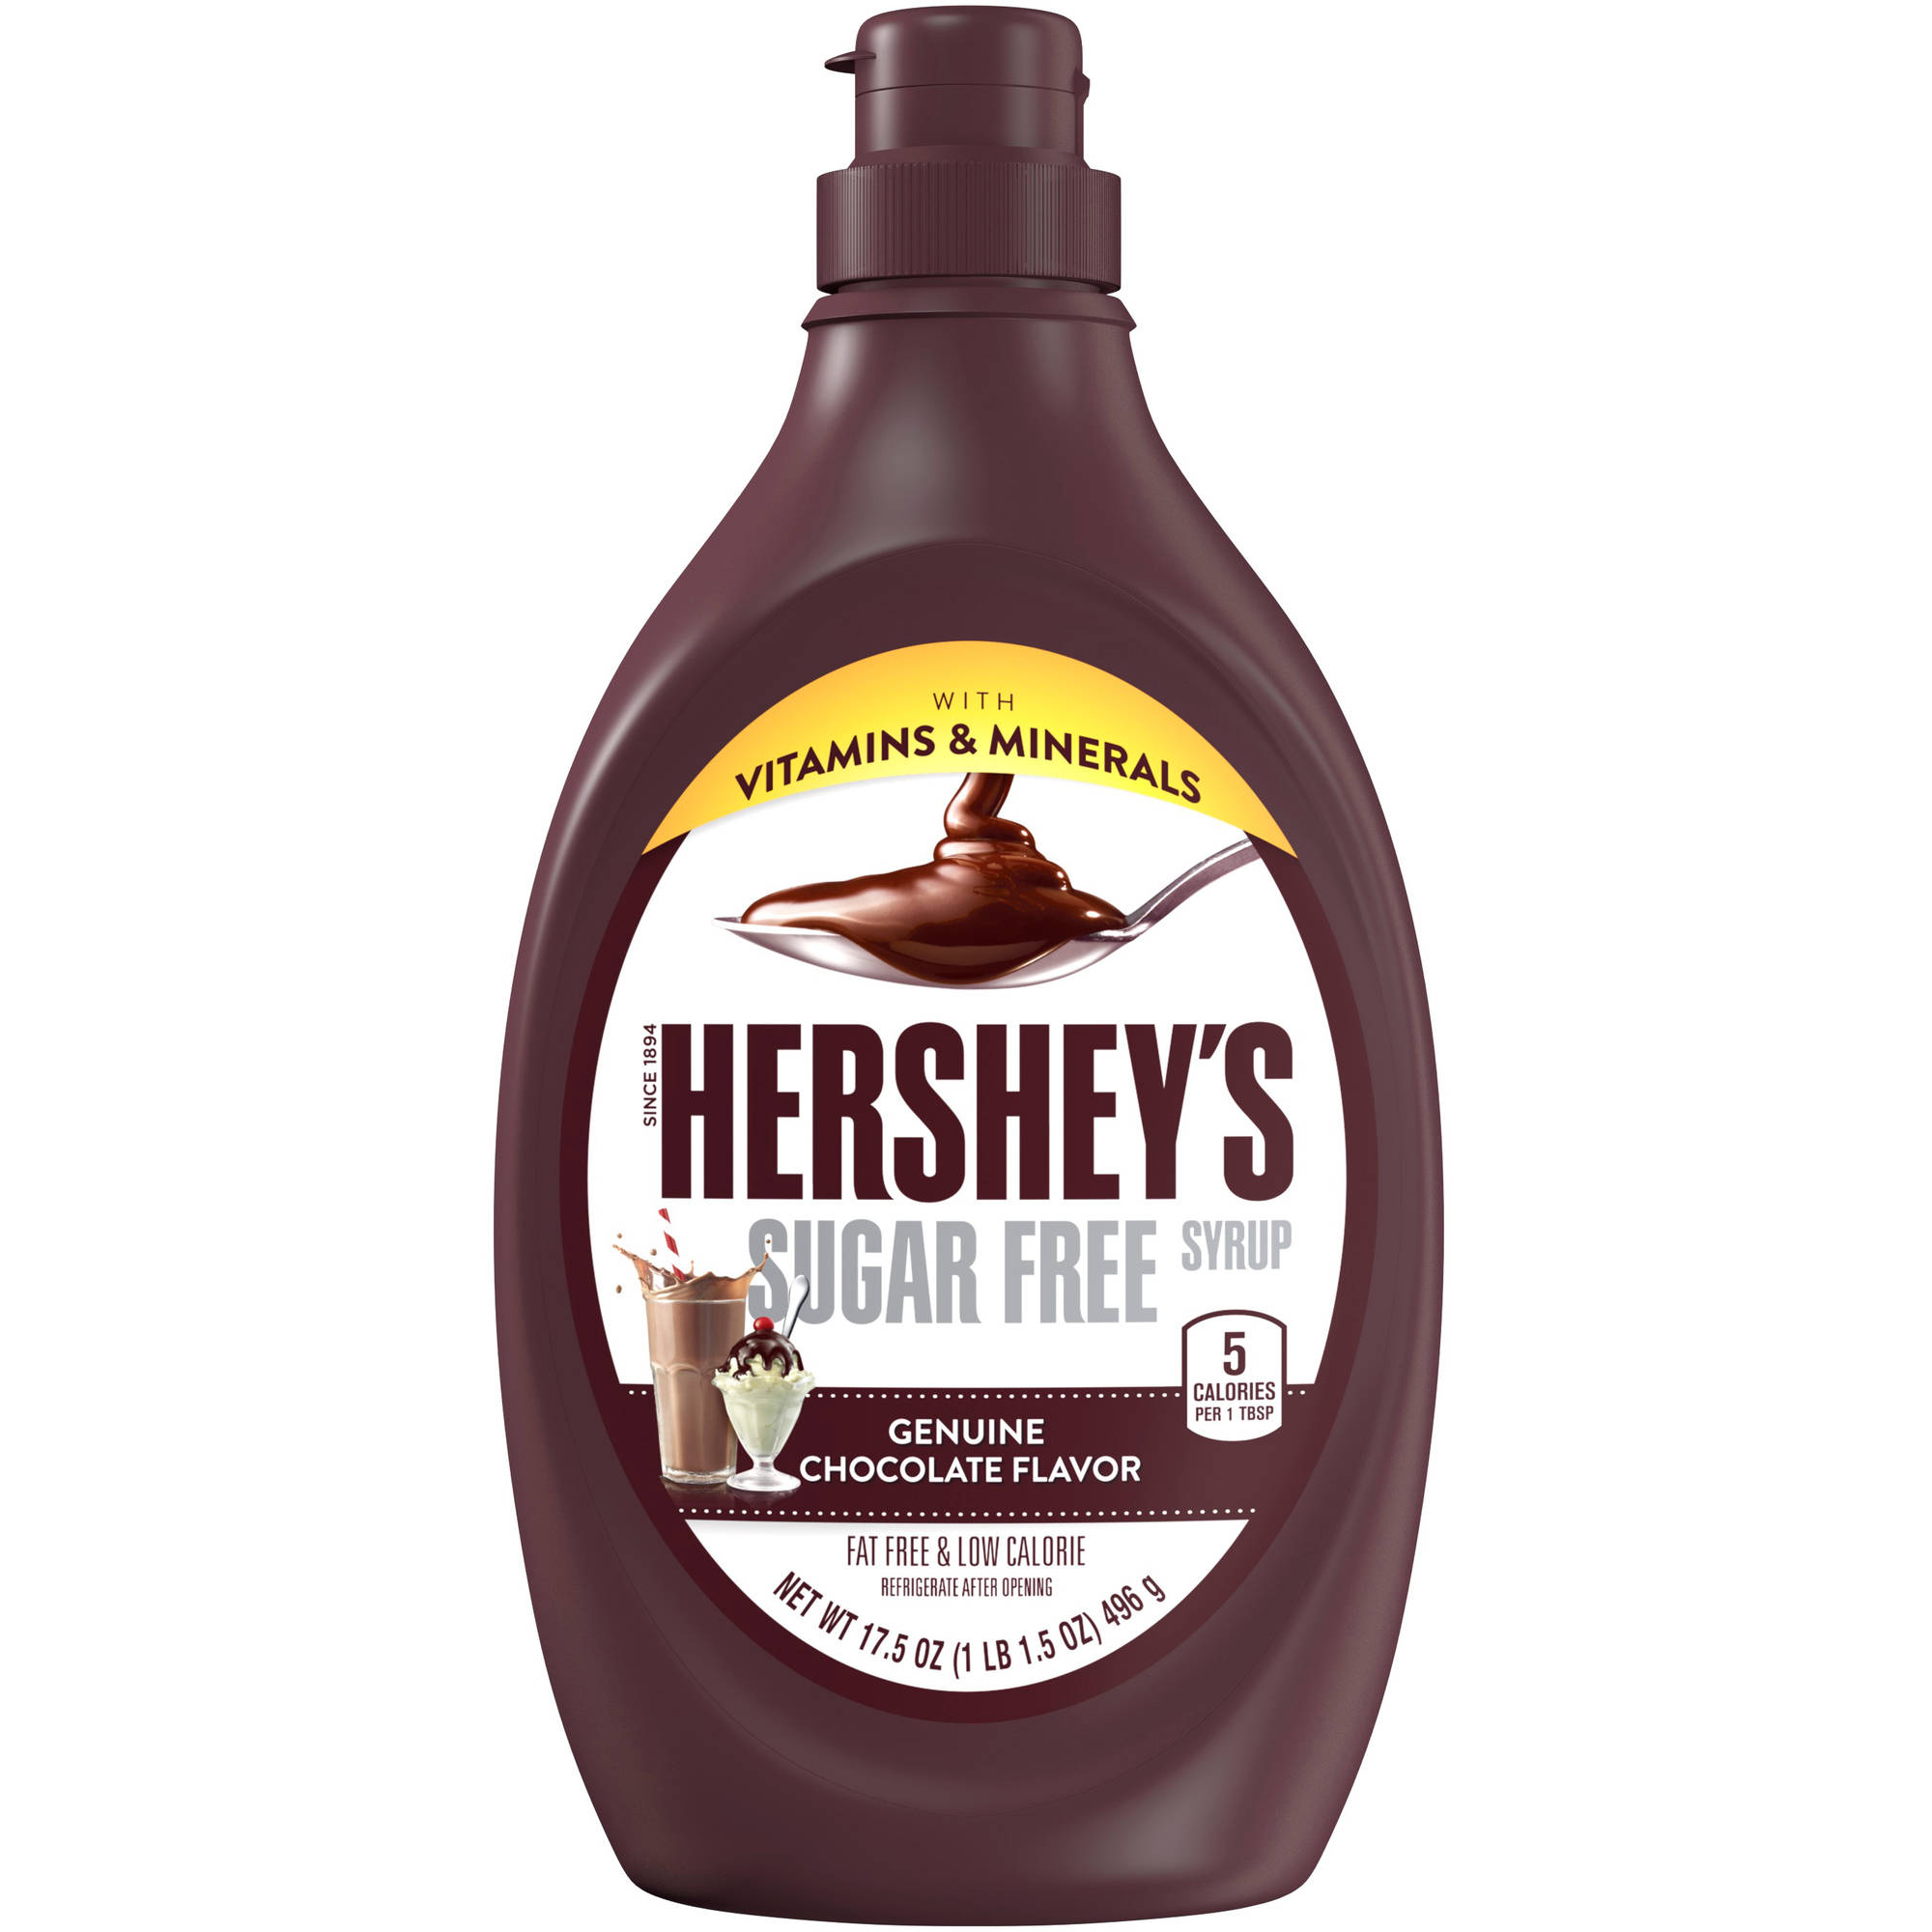 Hershey's Chocolate Syrup Low Calorie Sugar Free Vitamin & Mineral Fortified, 17.5 oz